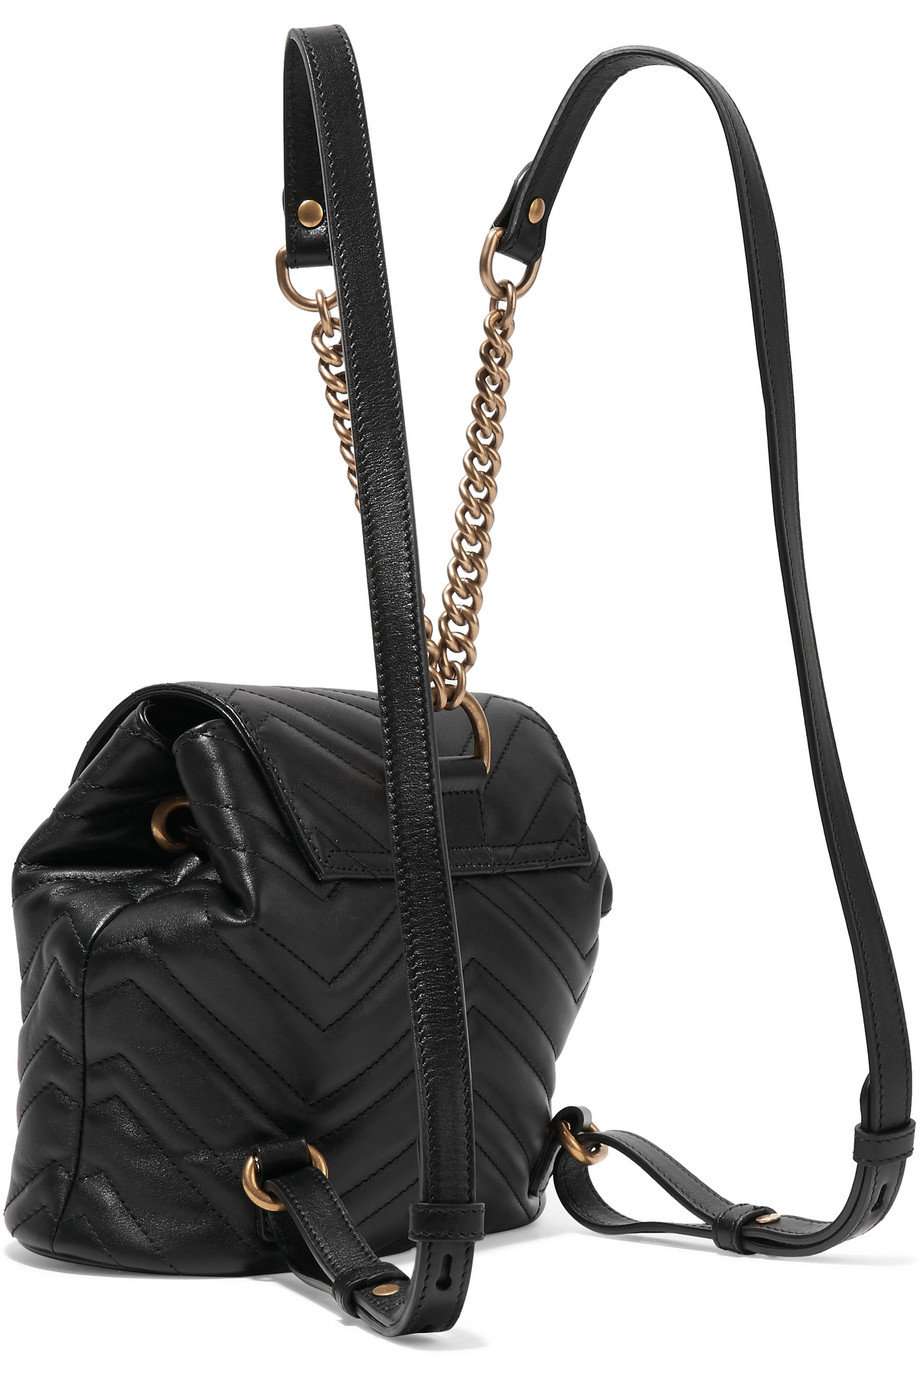 hot-selling clients first info for Gucci GG Marmont quilted leather backpack | Bagolysshop